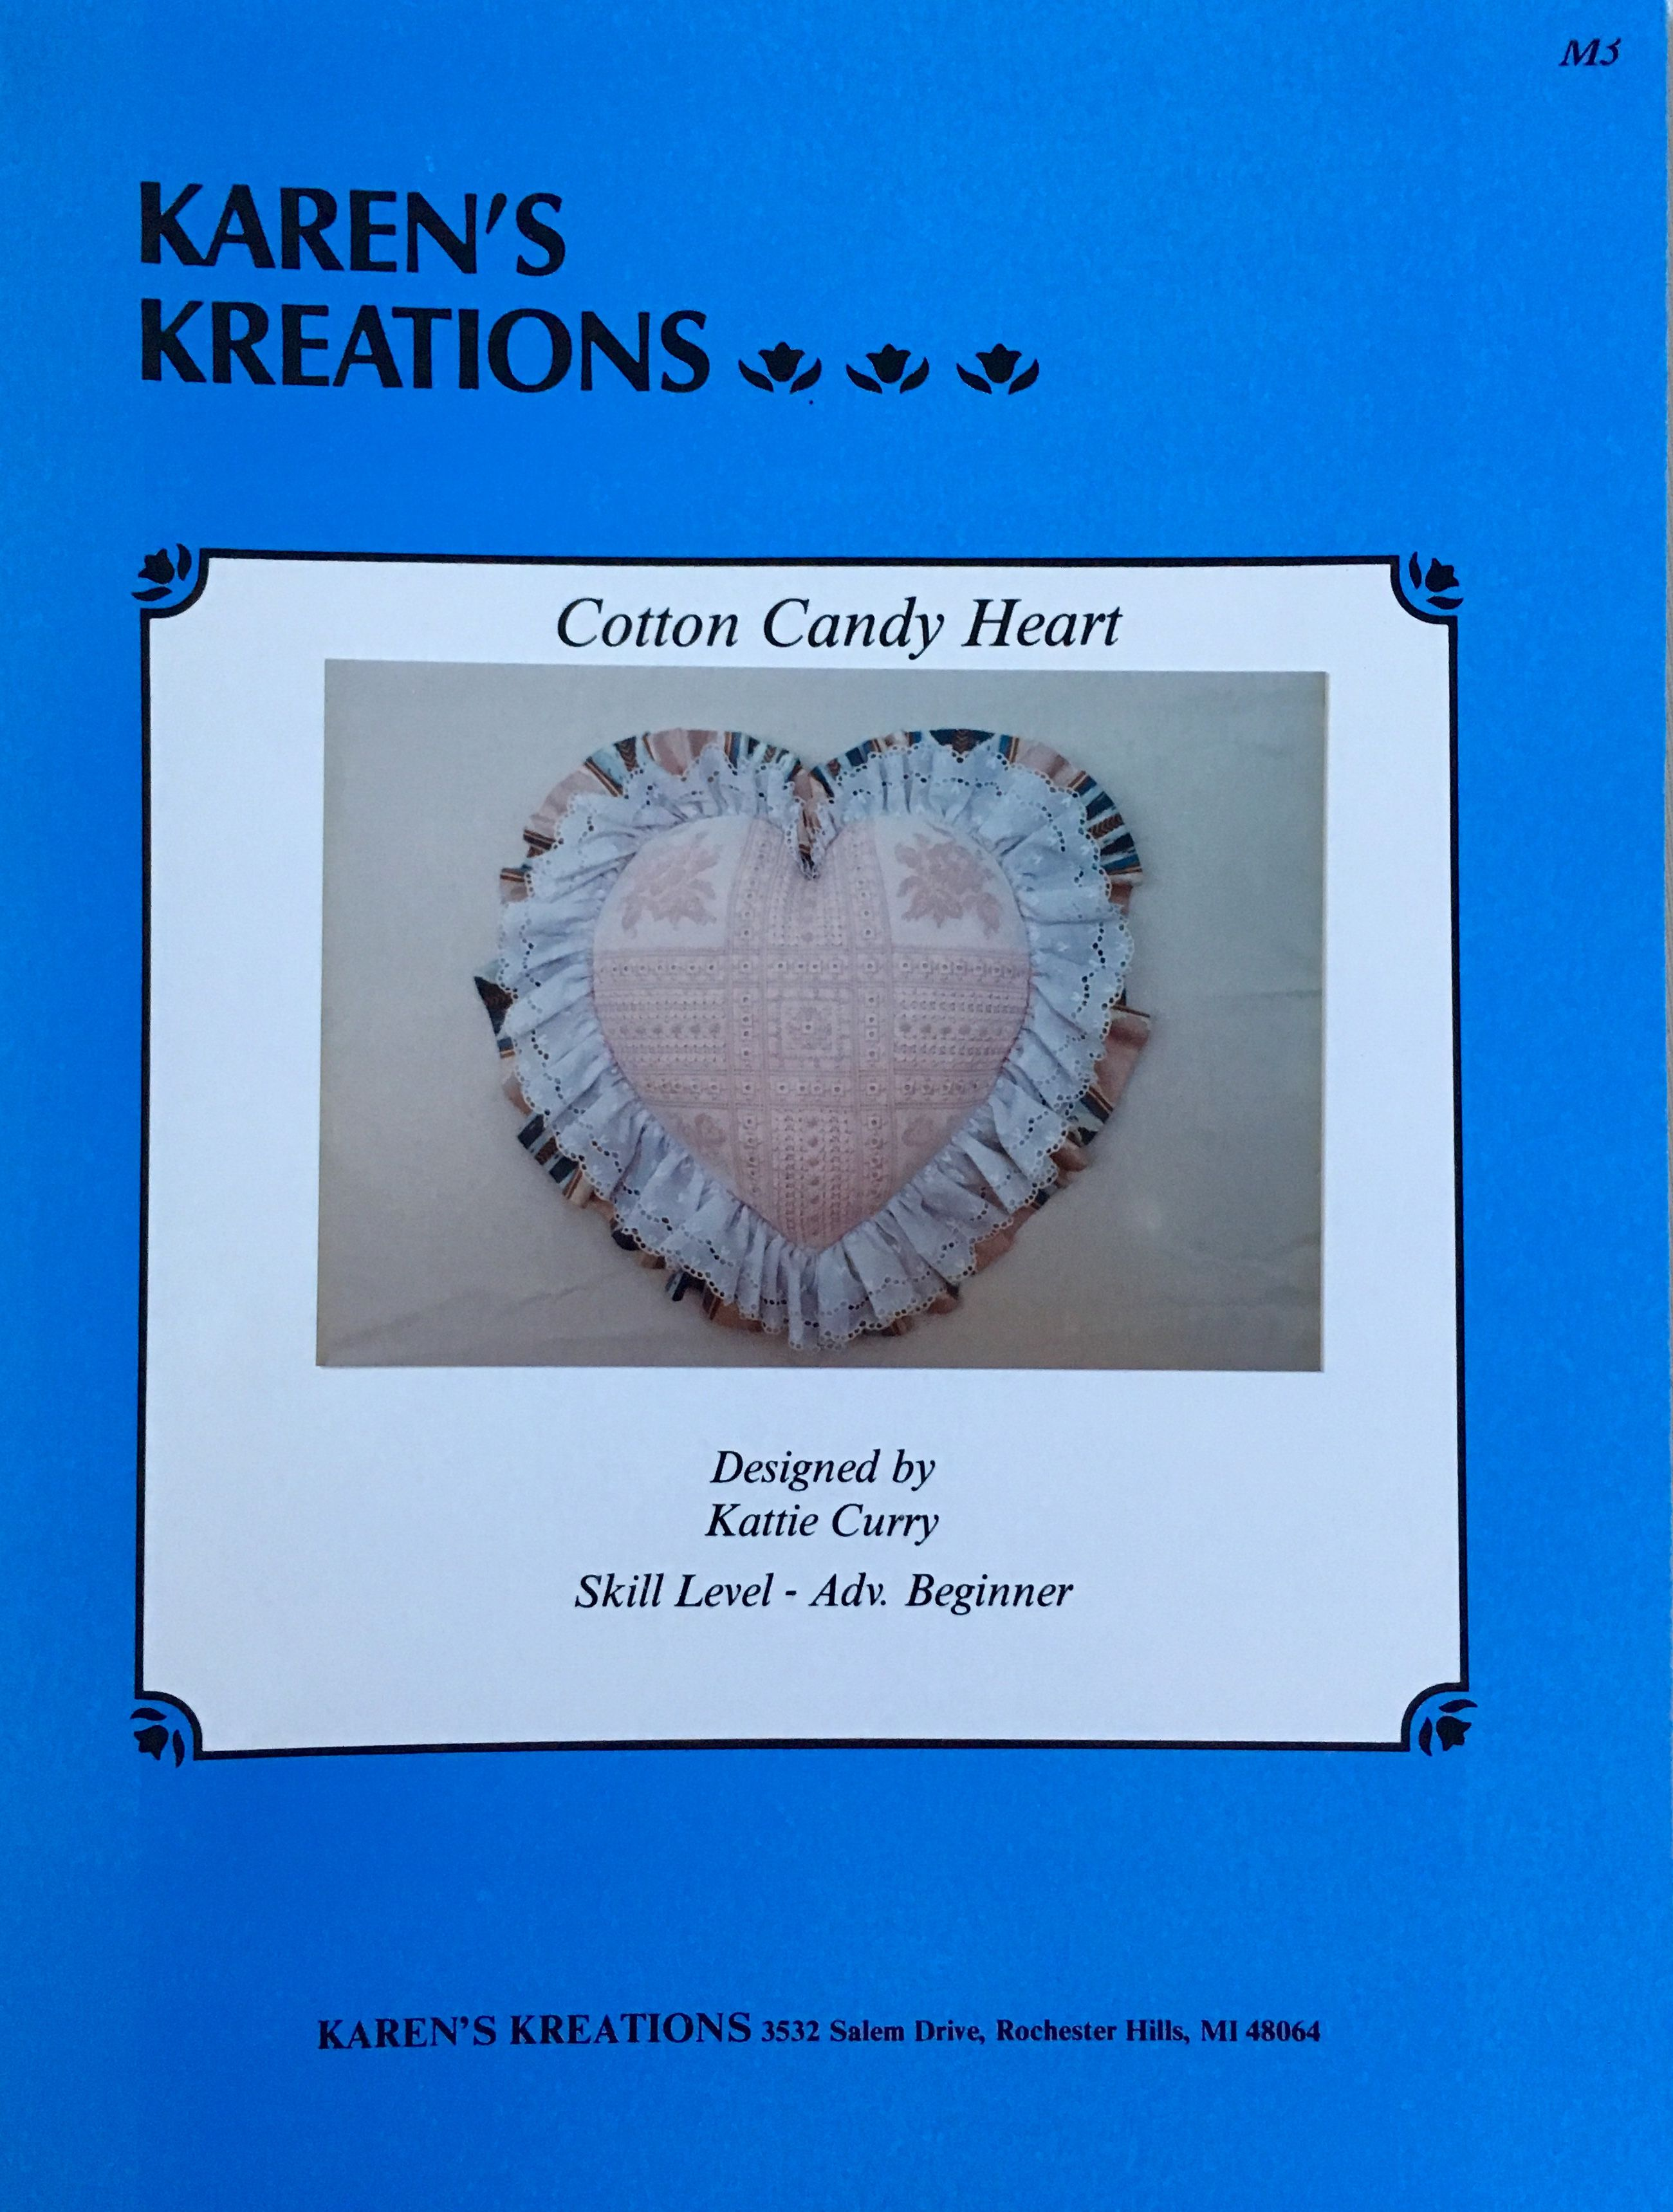 Cotton Candy Heart By Karens Kreations